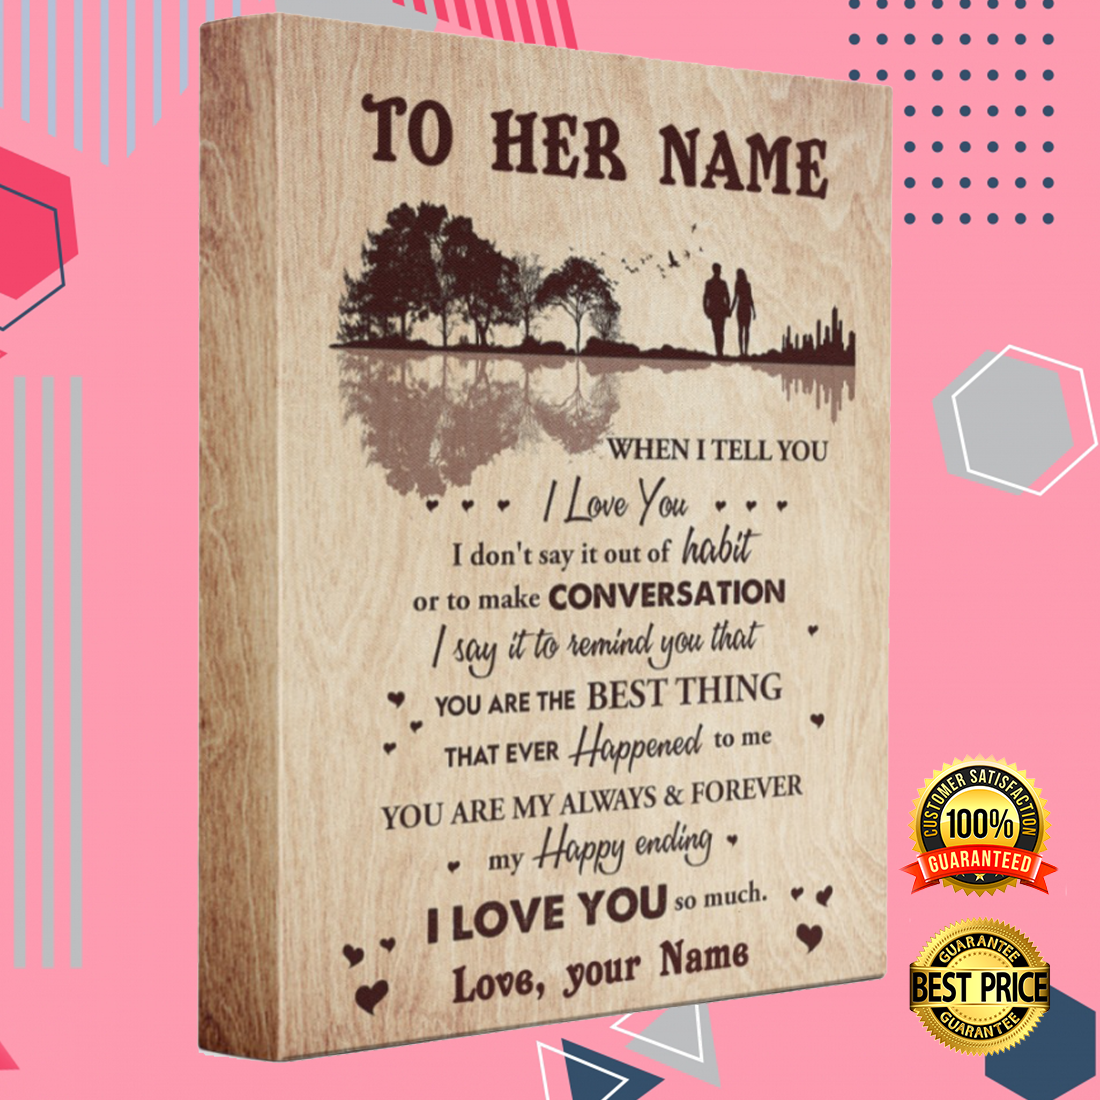 Personalized when i tell you i love you i don't say it out of habit canvas 3